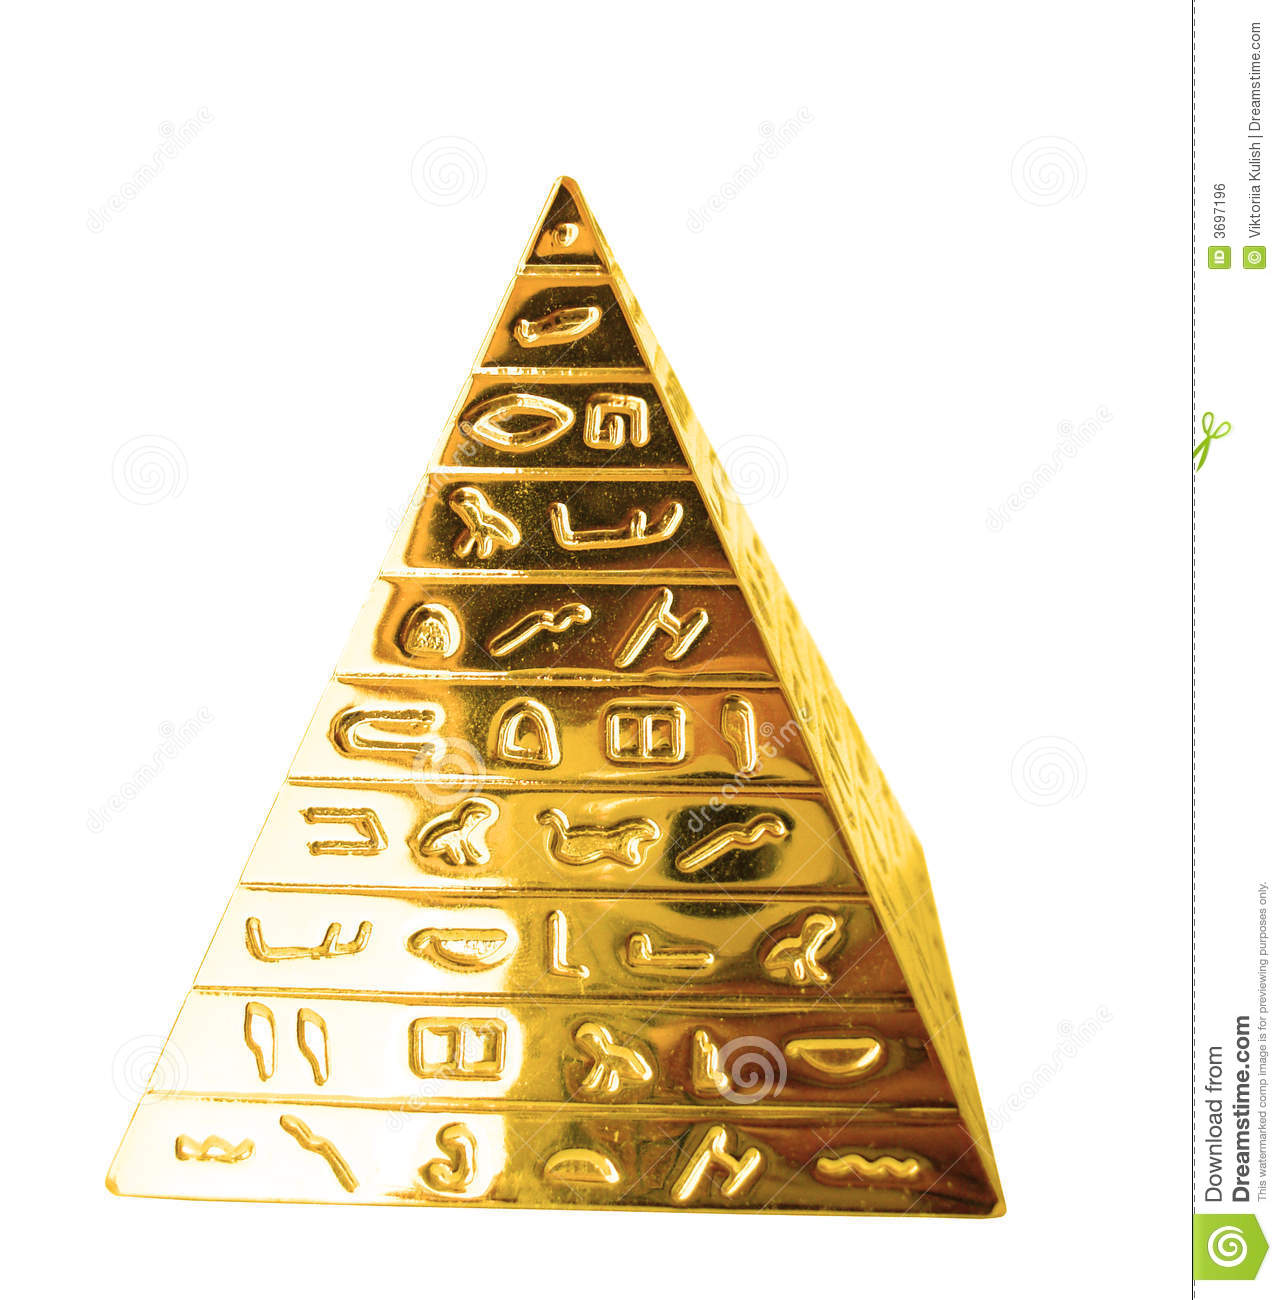 Golden Pyramid Royalty Free Stock Image - Image: 3697196